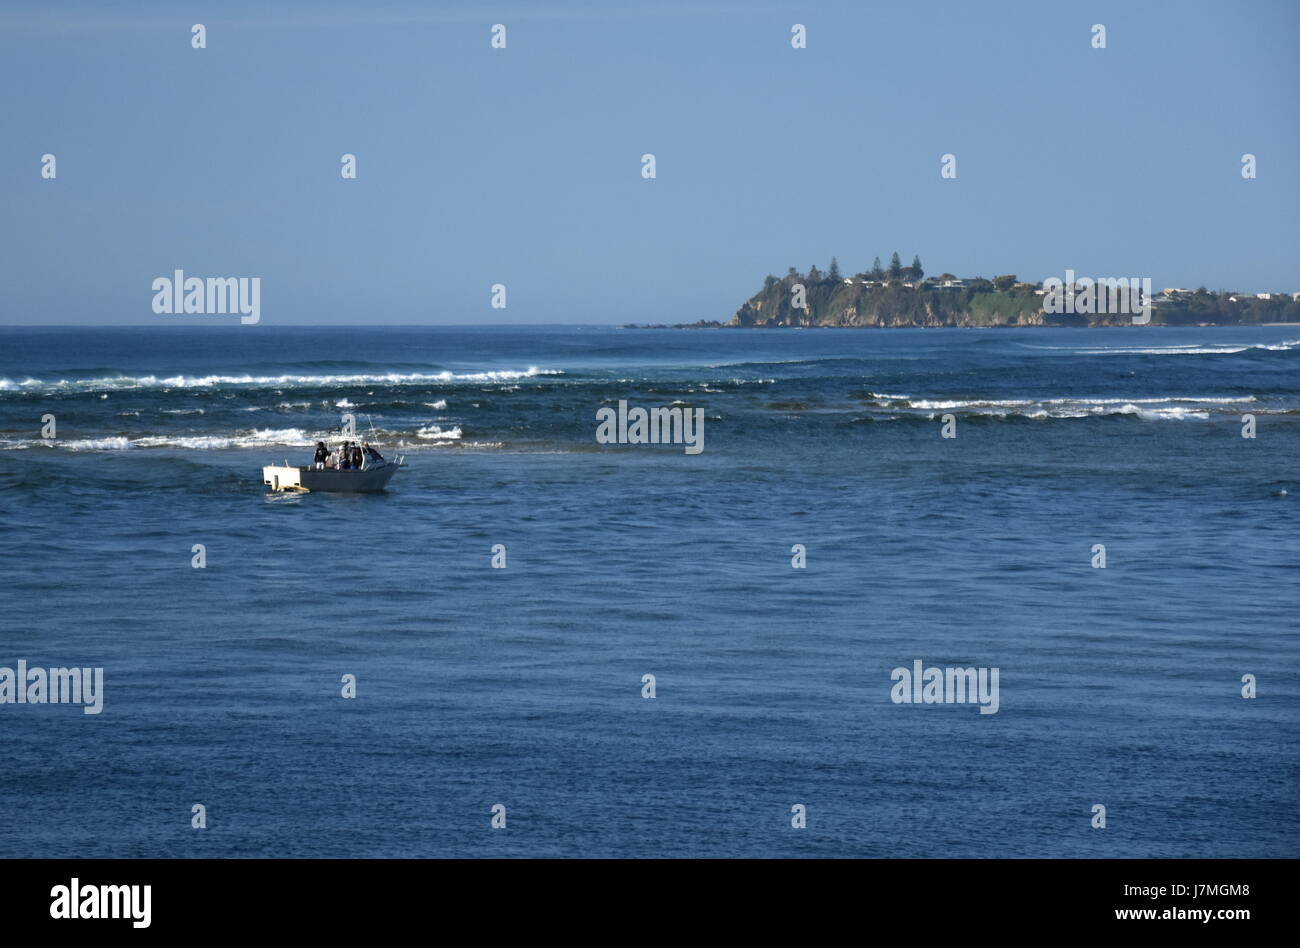 Fishing boat with people on the sea at Tuross Head. Potato Point in the background. Tuross Head is a seaside village - Stock Image